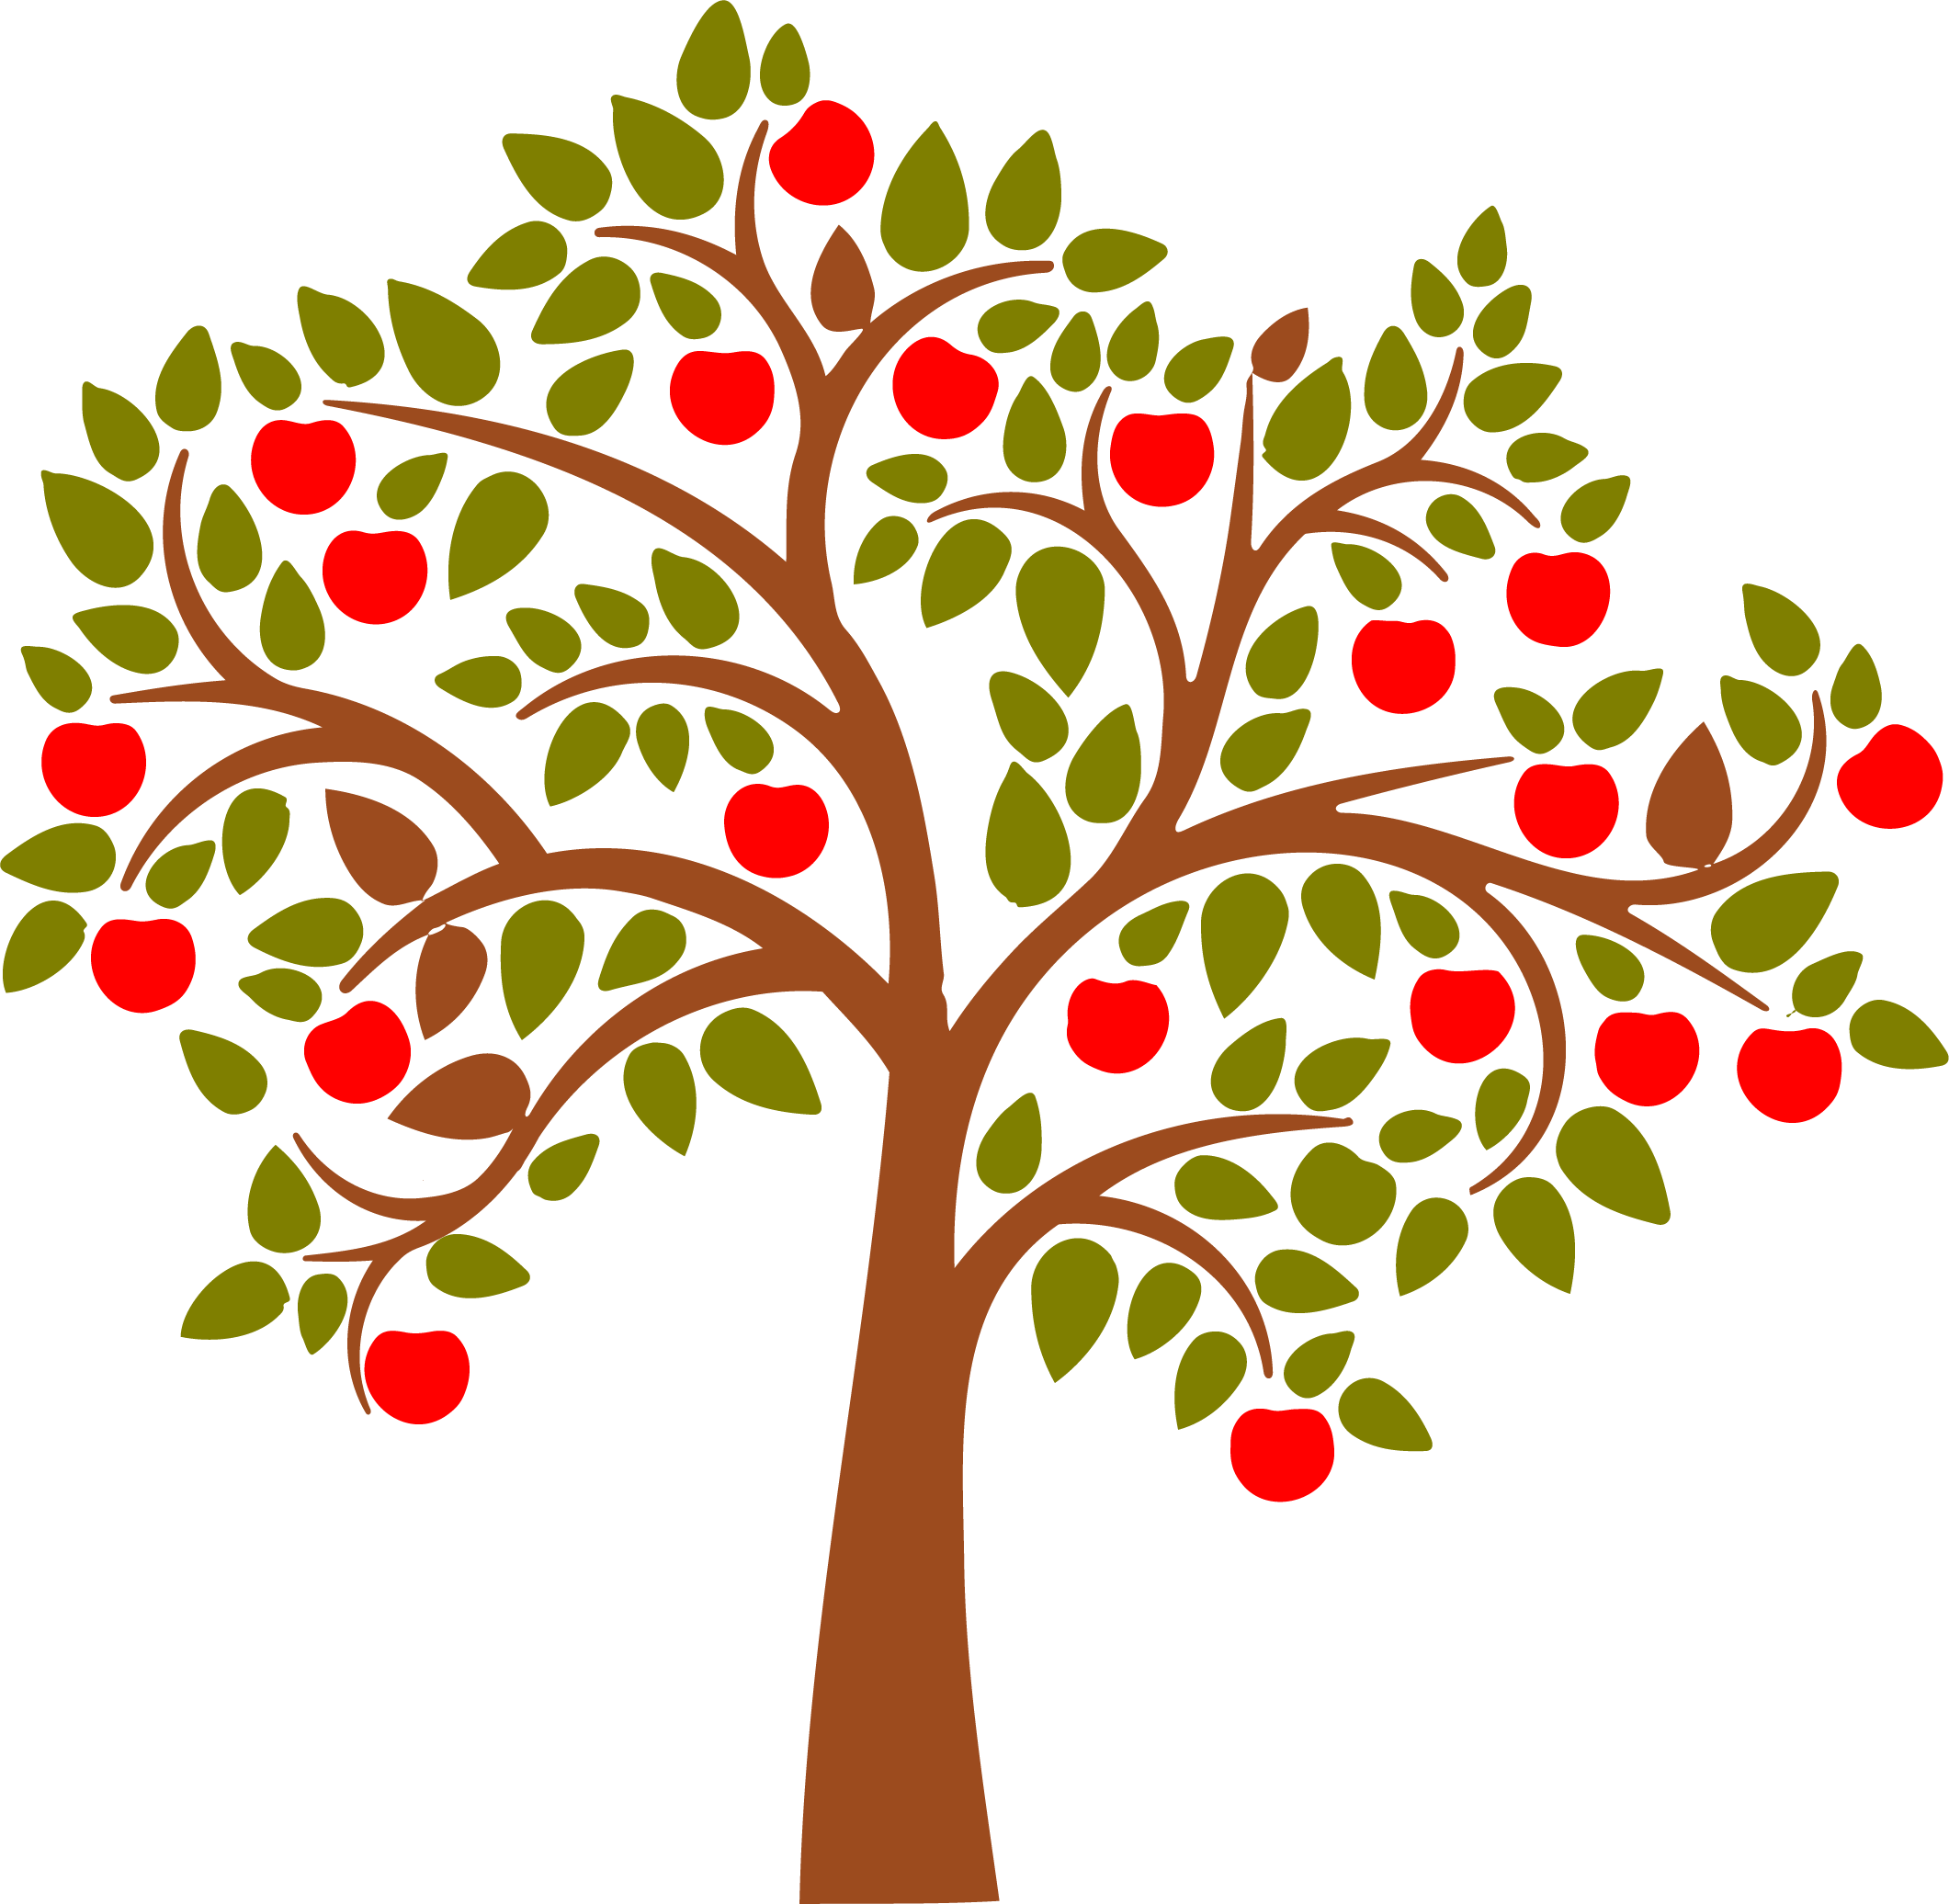 Apple tree wall decal. Heart clipart teacher